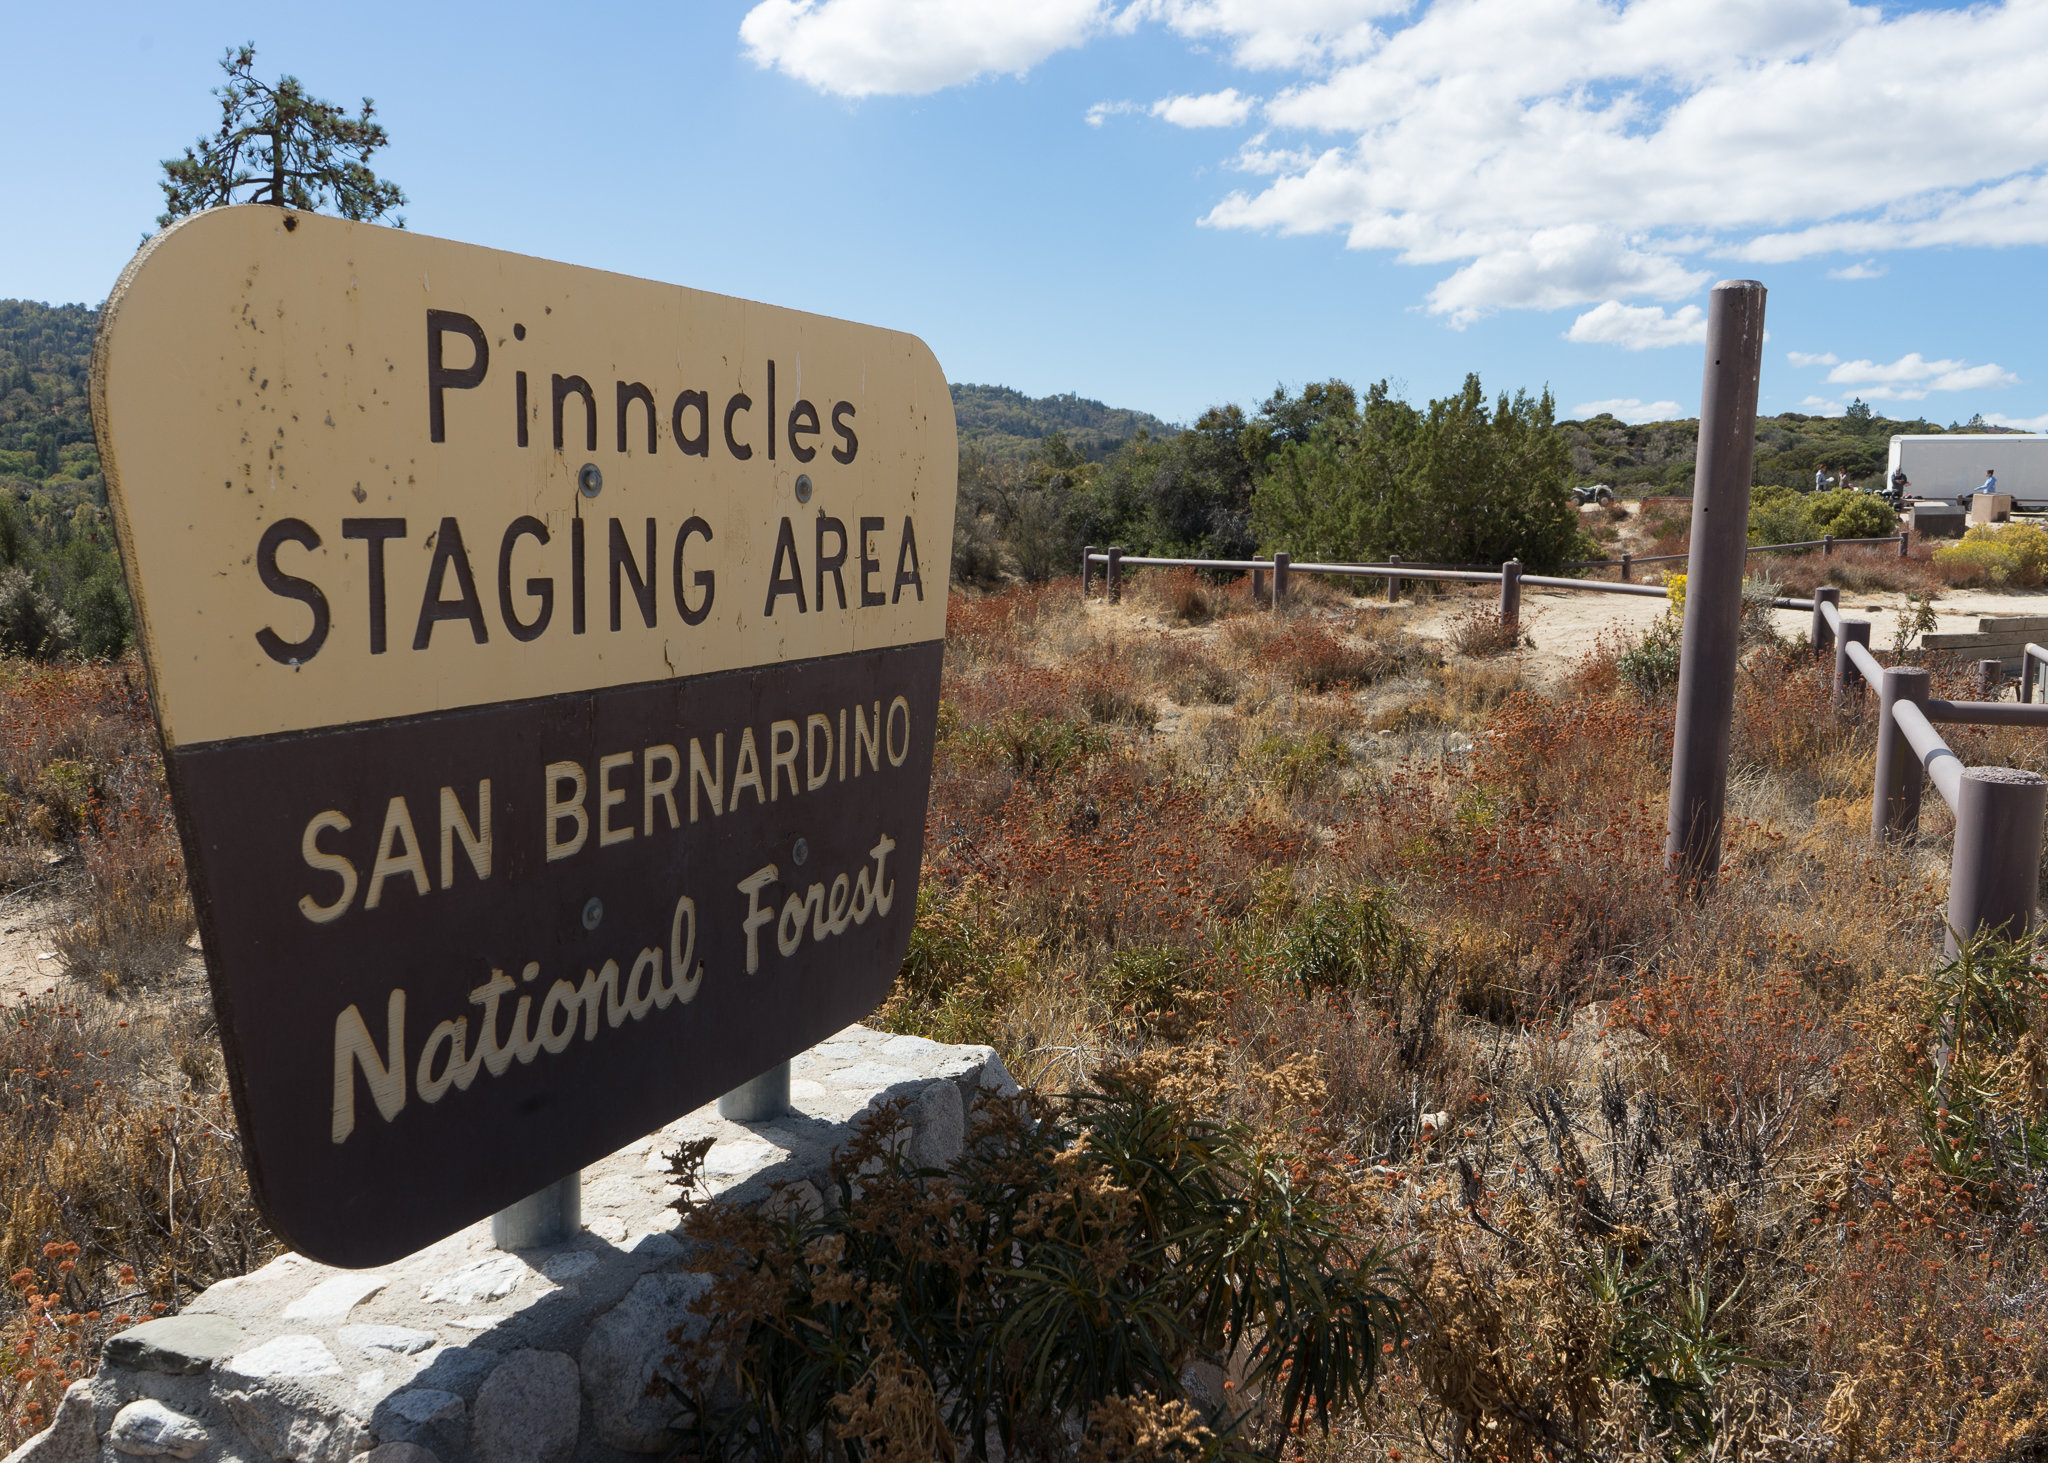 Pinnacles Staging Area